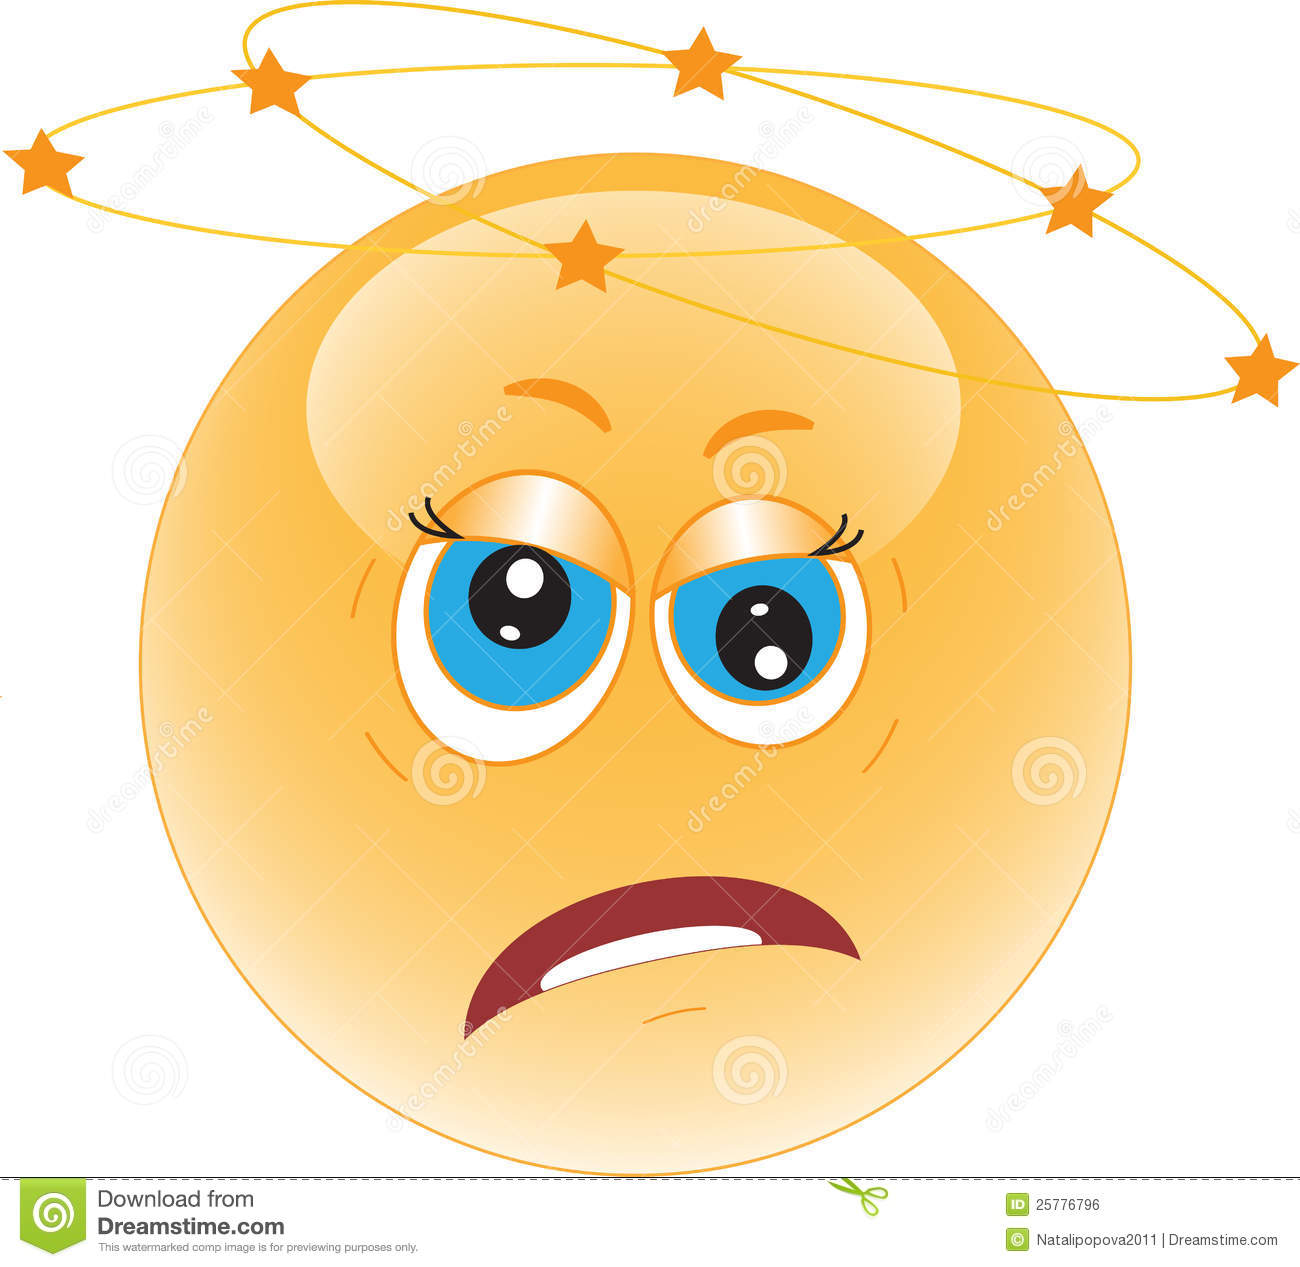 Royalty Free Stock Image  Frustrated Smiley  Icon  emotionsFrustrated Emotion